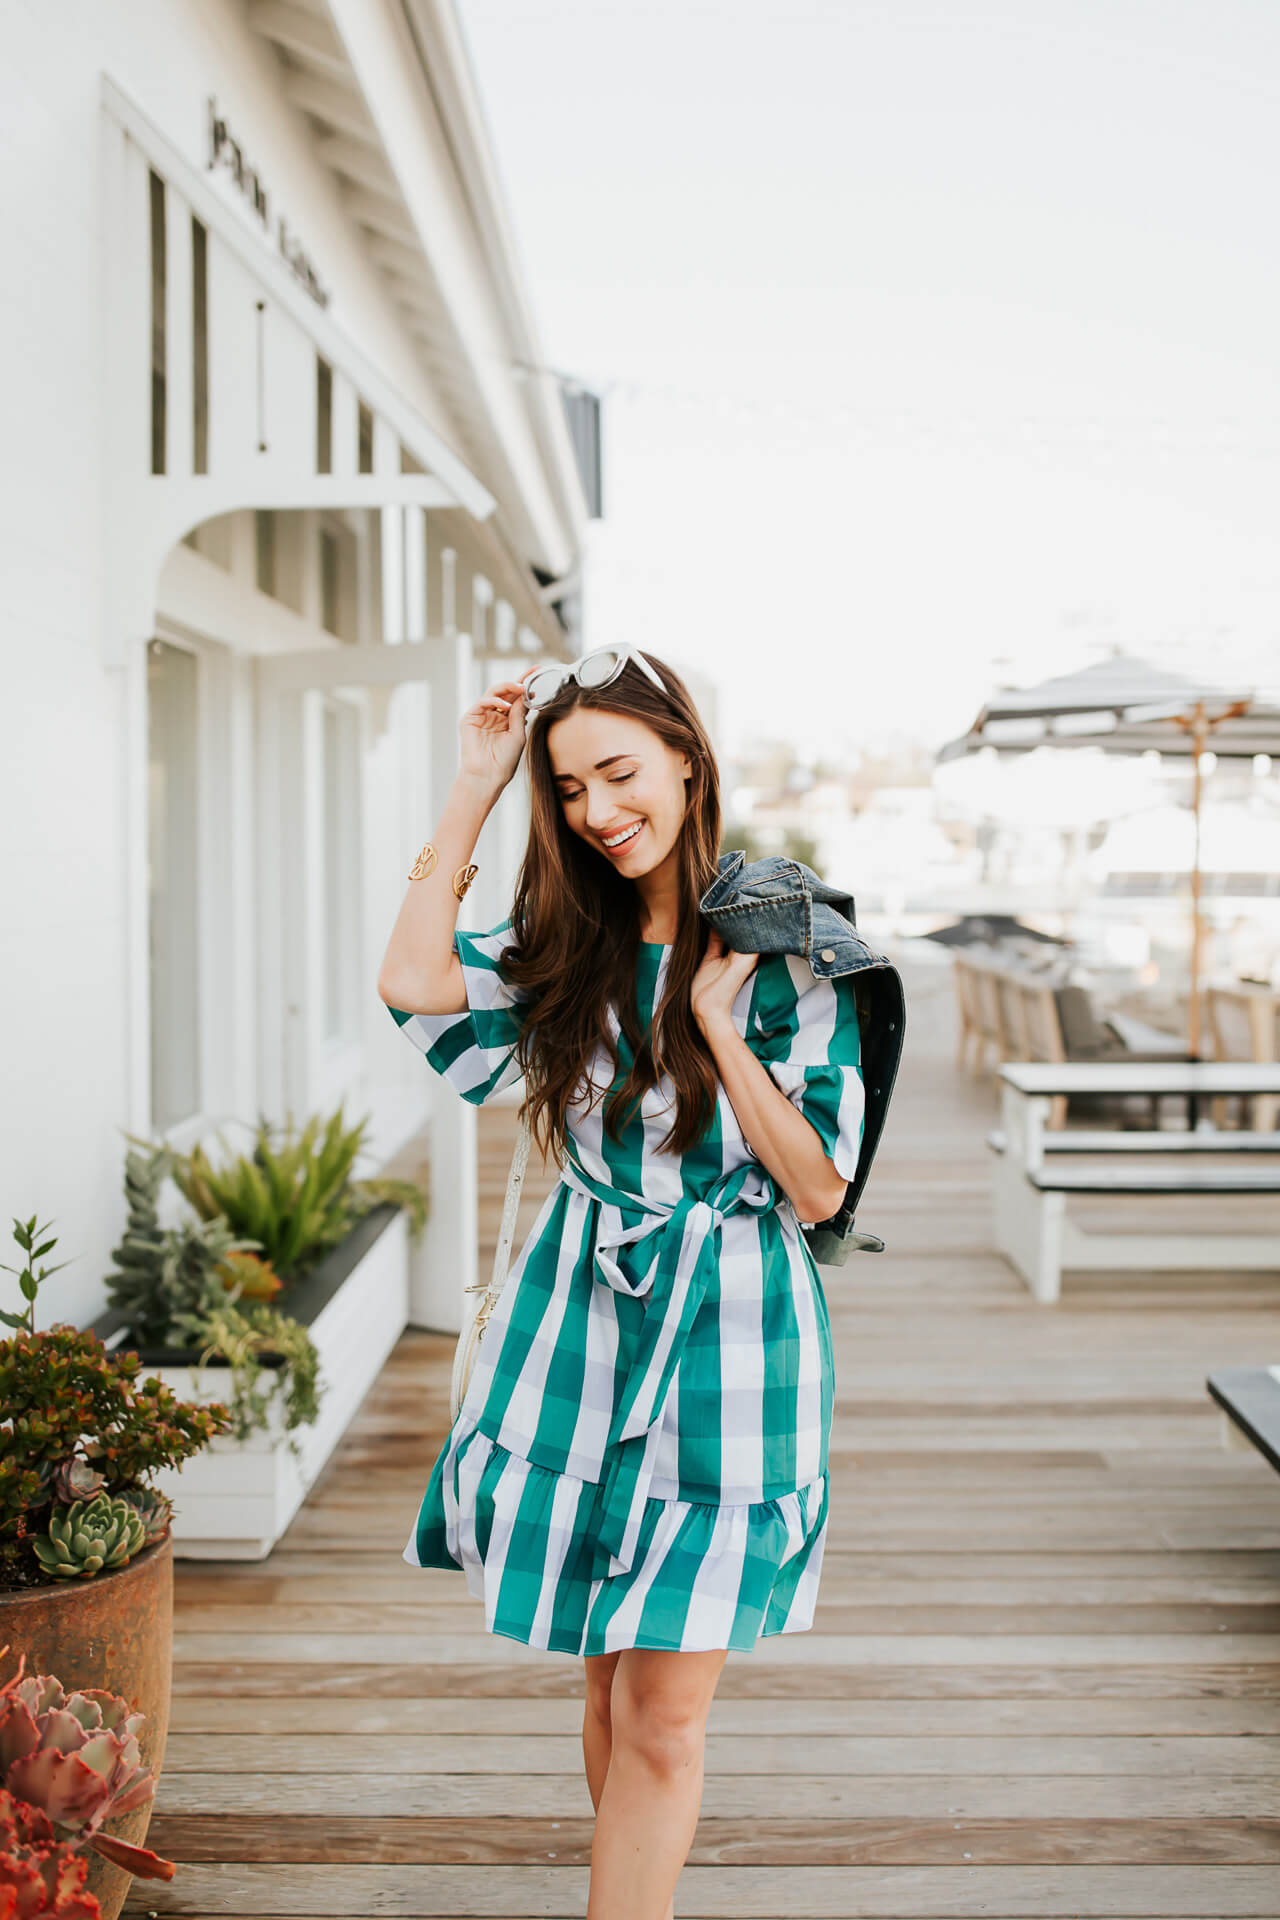 I really like pairing this sweet gingham dress with a denim jacket that adds a little edge.   M Loves M @marmar